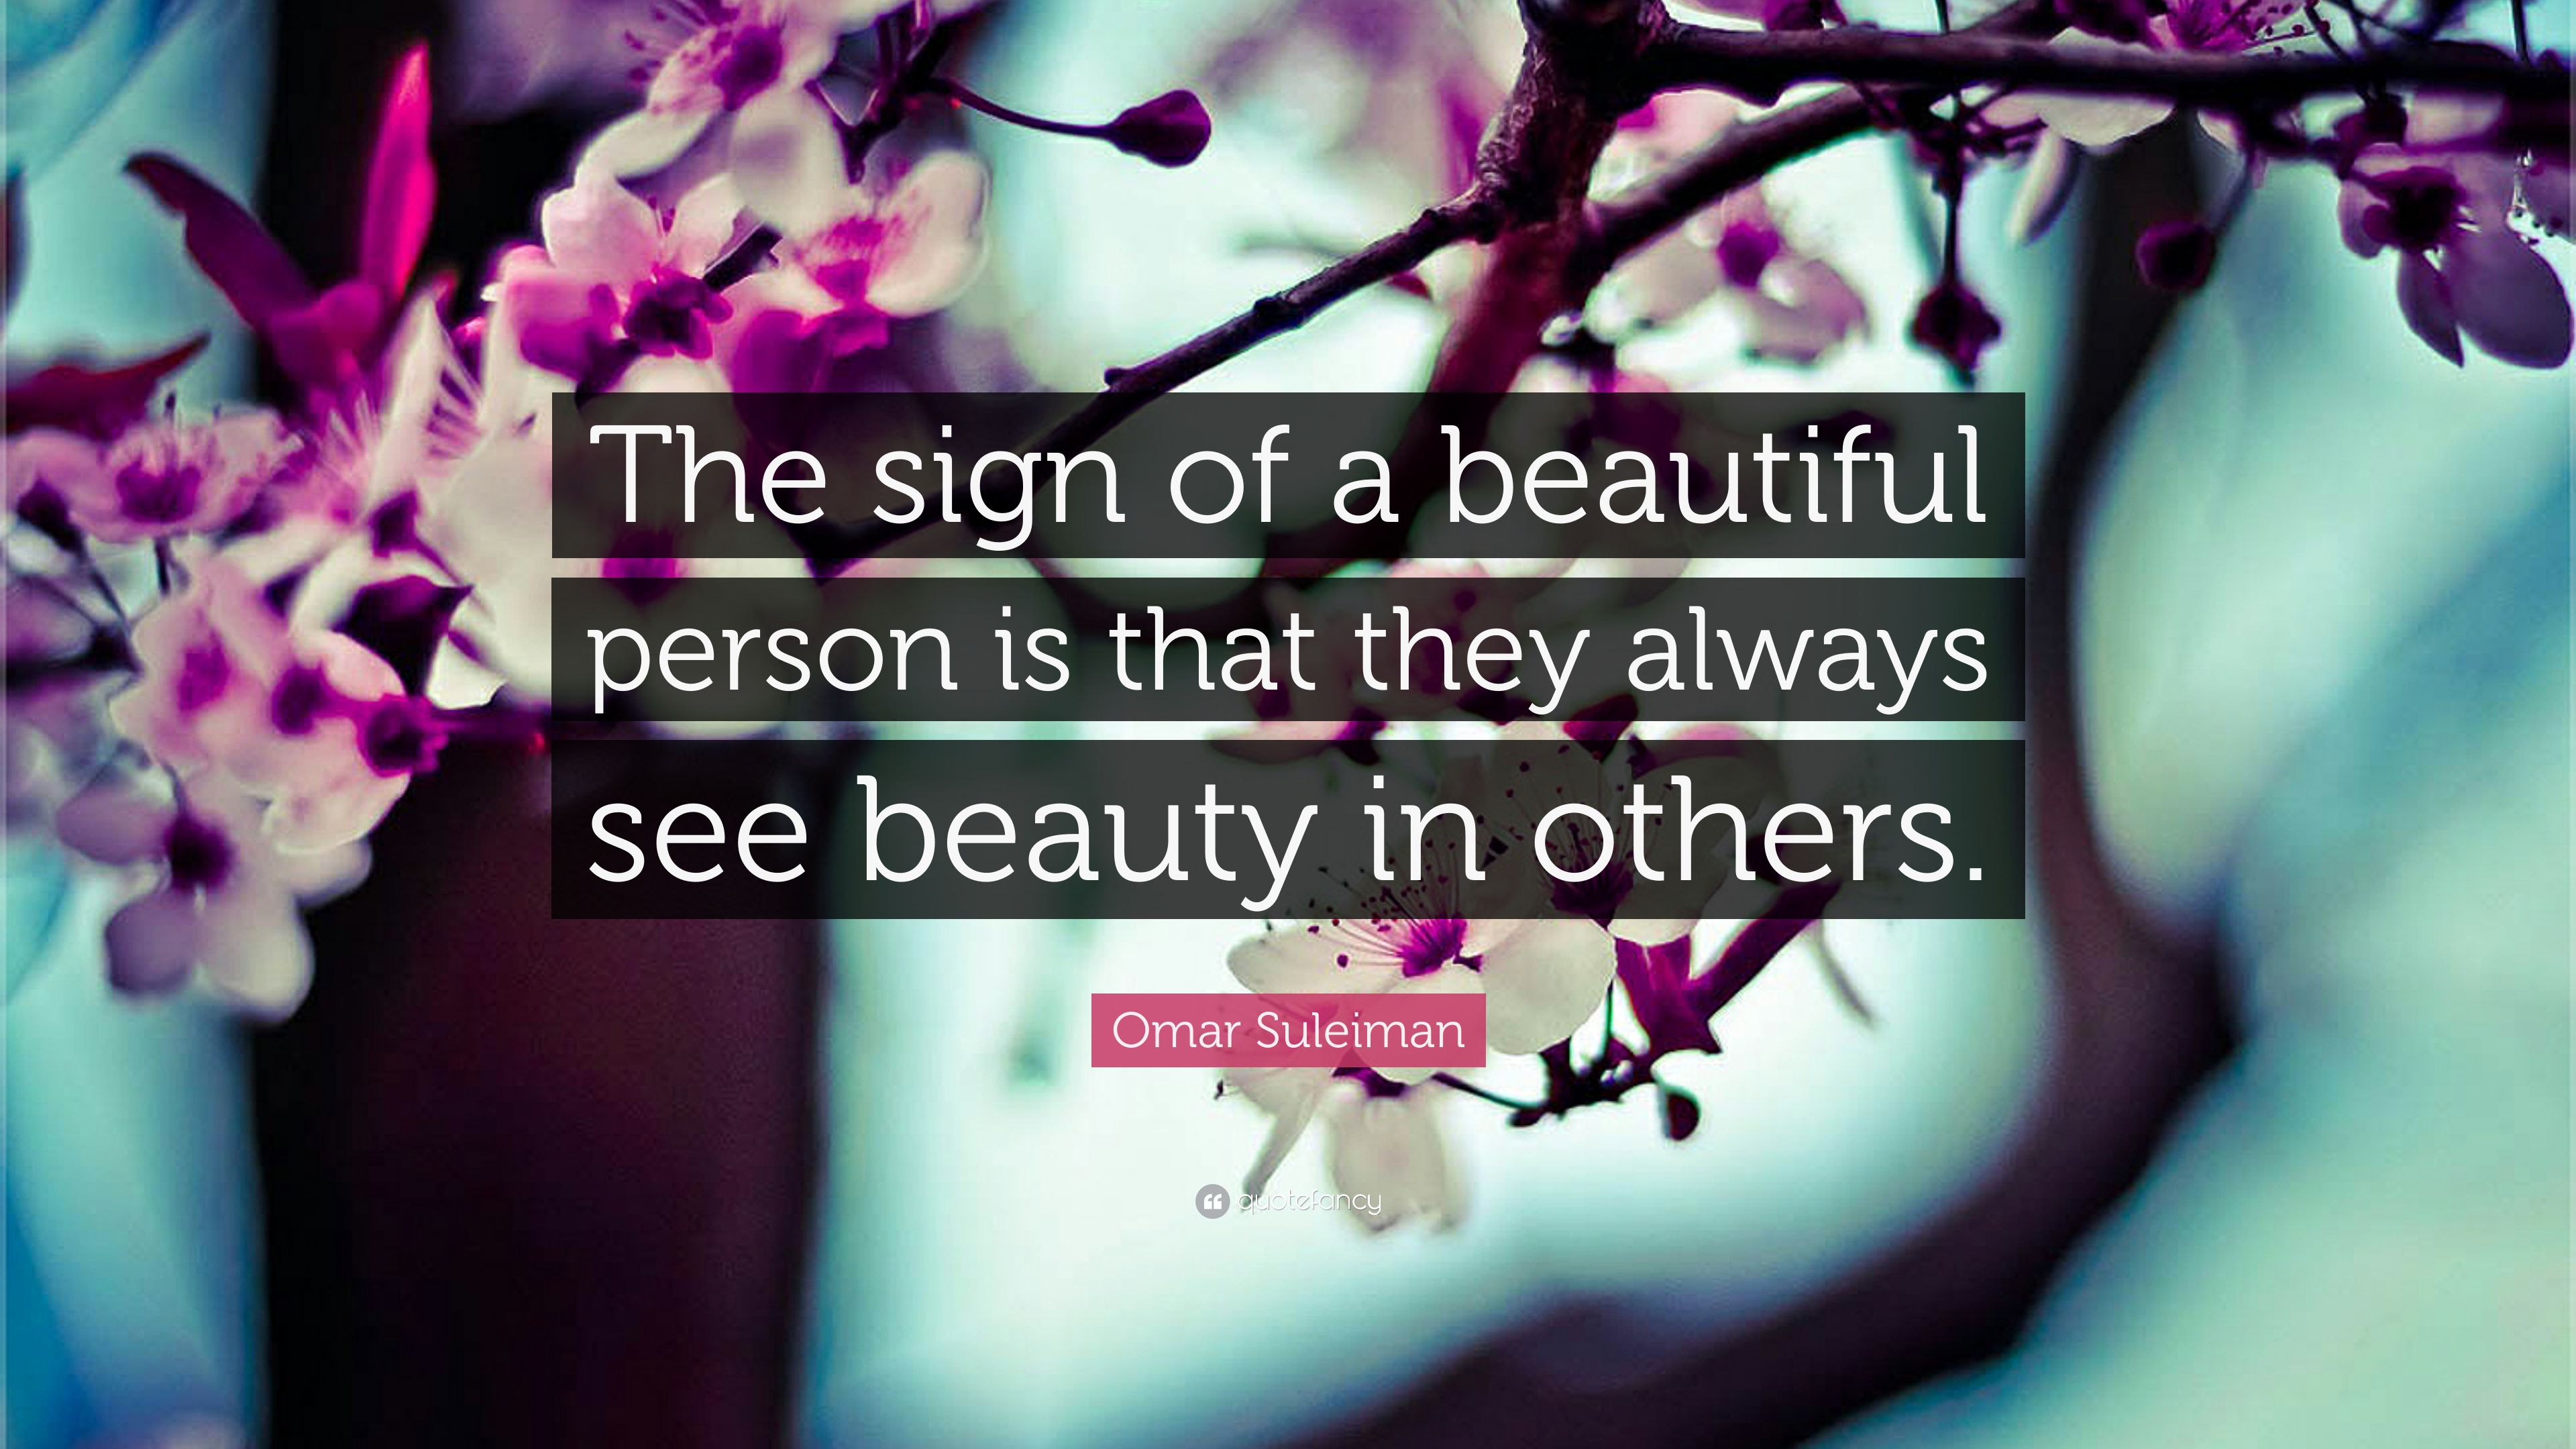 Omar suleiman quote the sign of a beautiful person is that they omar suleiman quote the sign of a beautiful person is that they always see izmirmasajfo Gallery